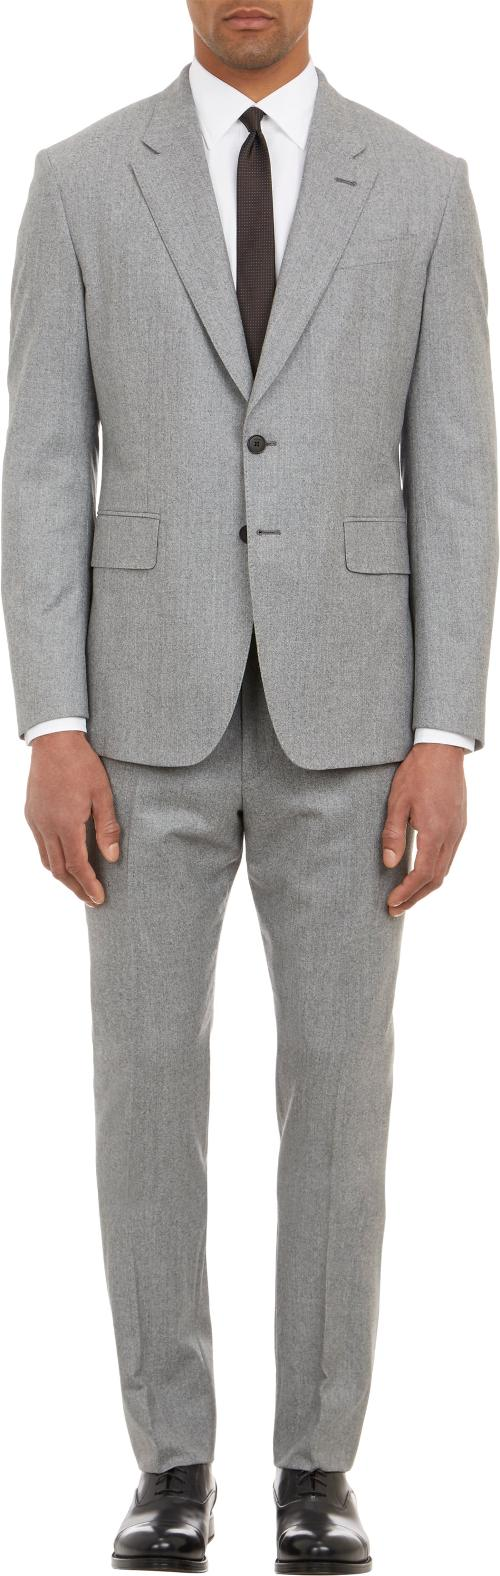 Flannel Two-Button Suit by Paul Smith Exclusive in Yves Saint Laurent